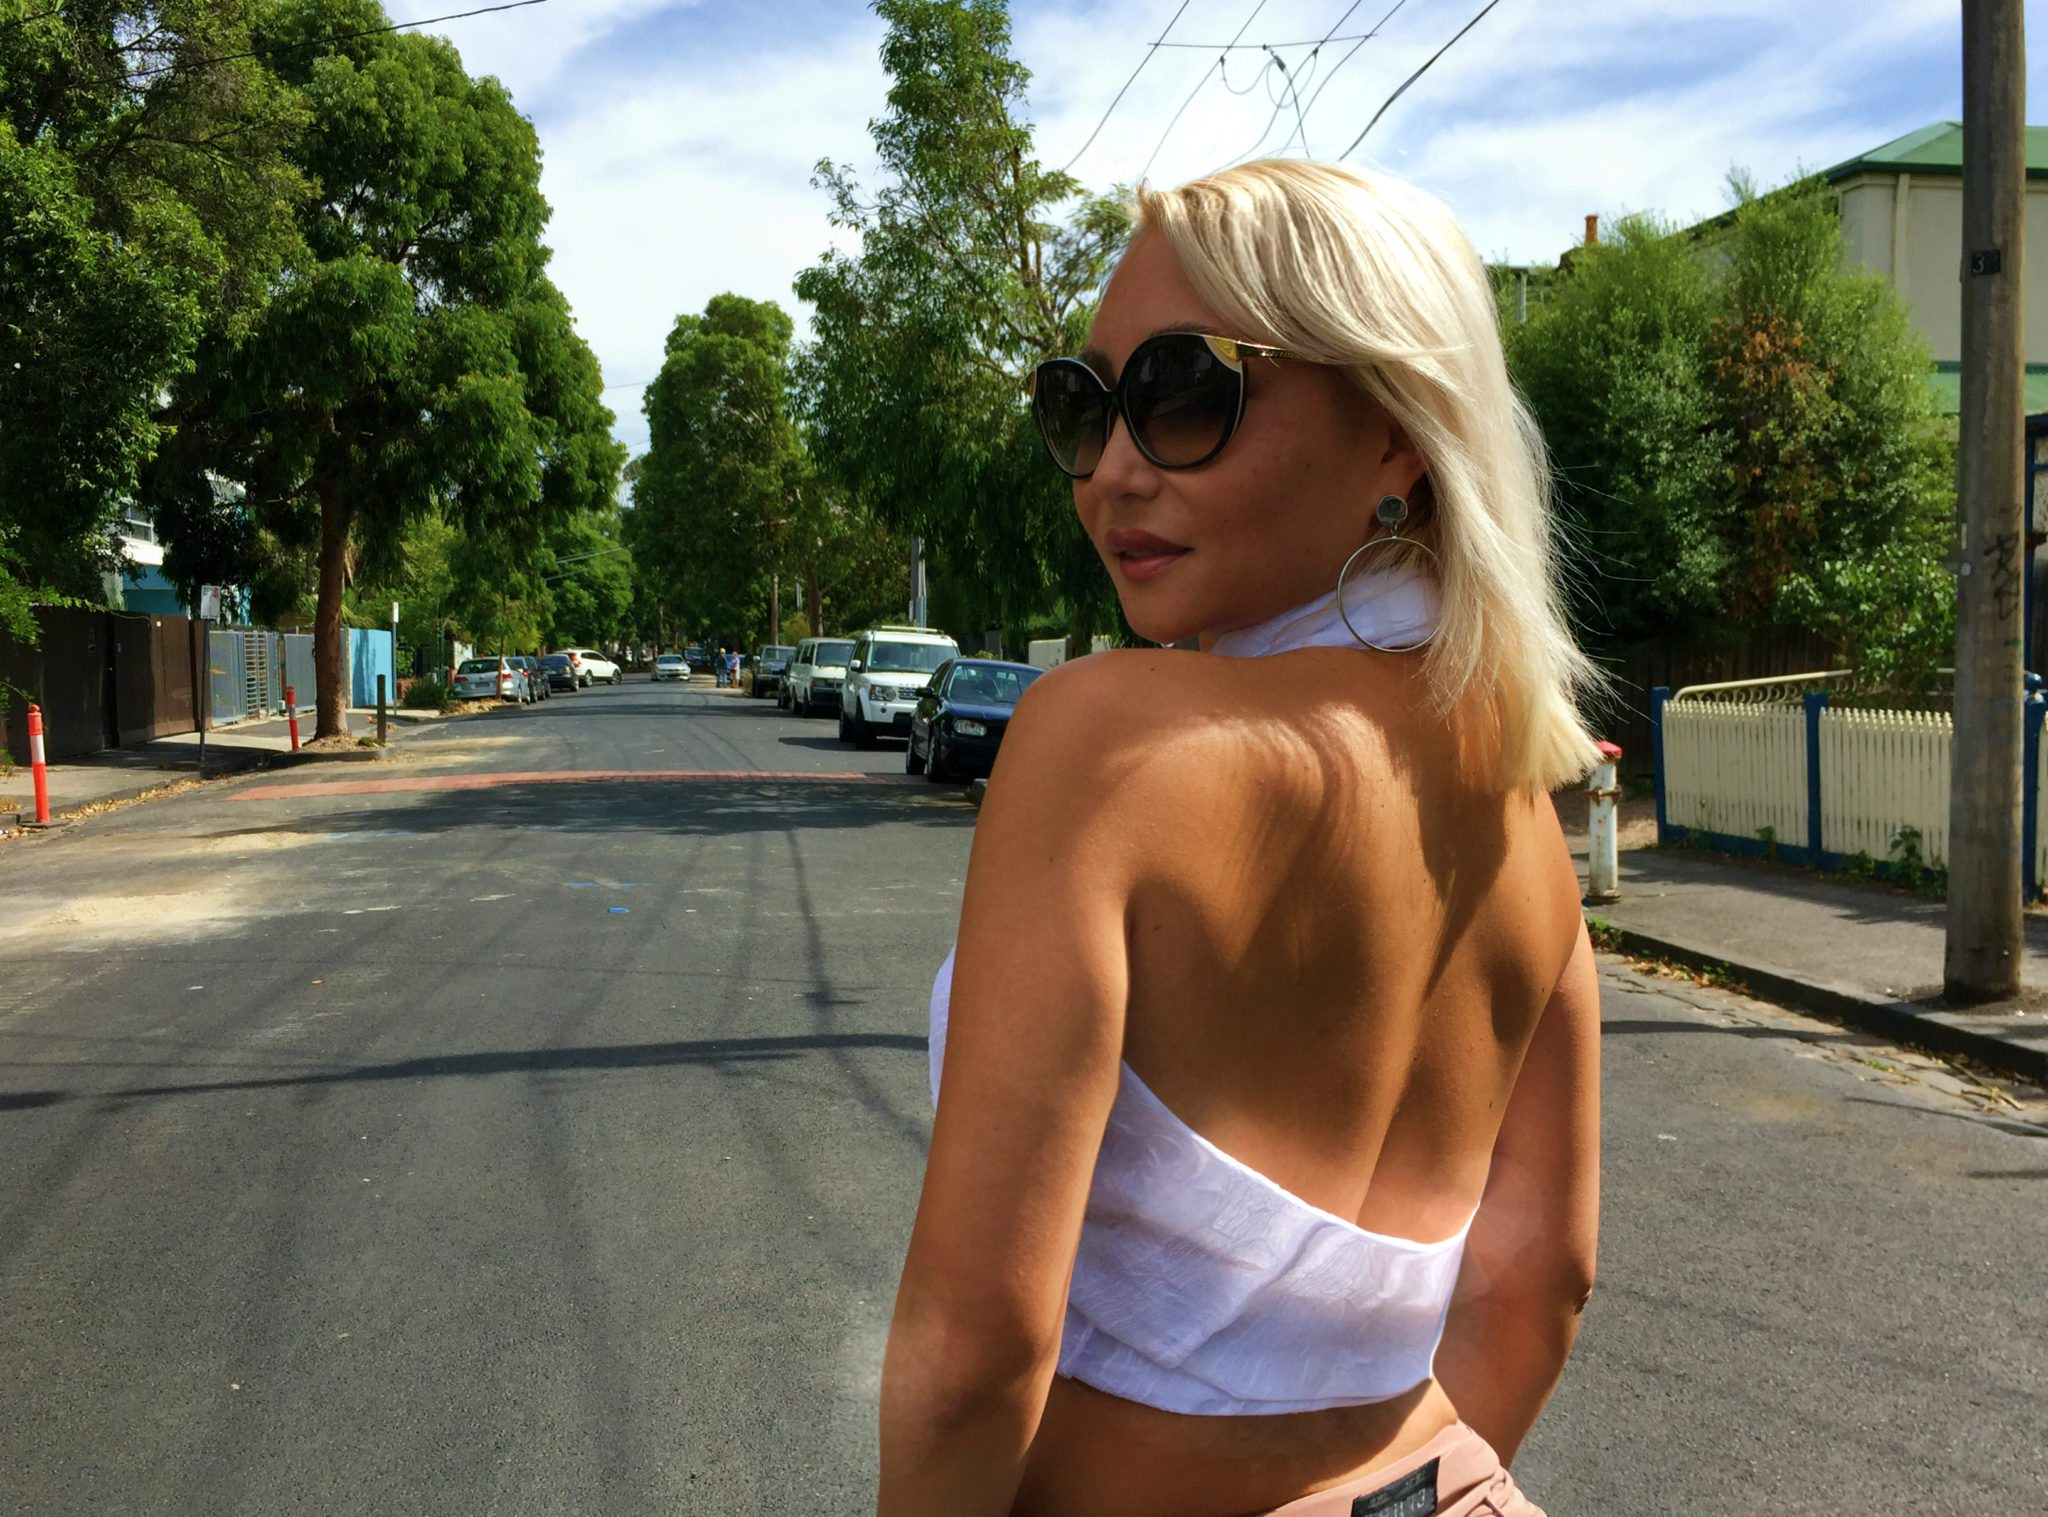 Model Cindy Carino in Melbournewearing a Lucy Laurita Roadtrip Wrap